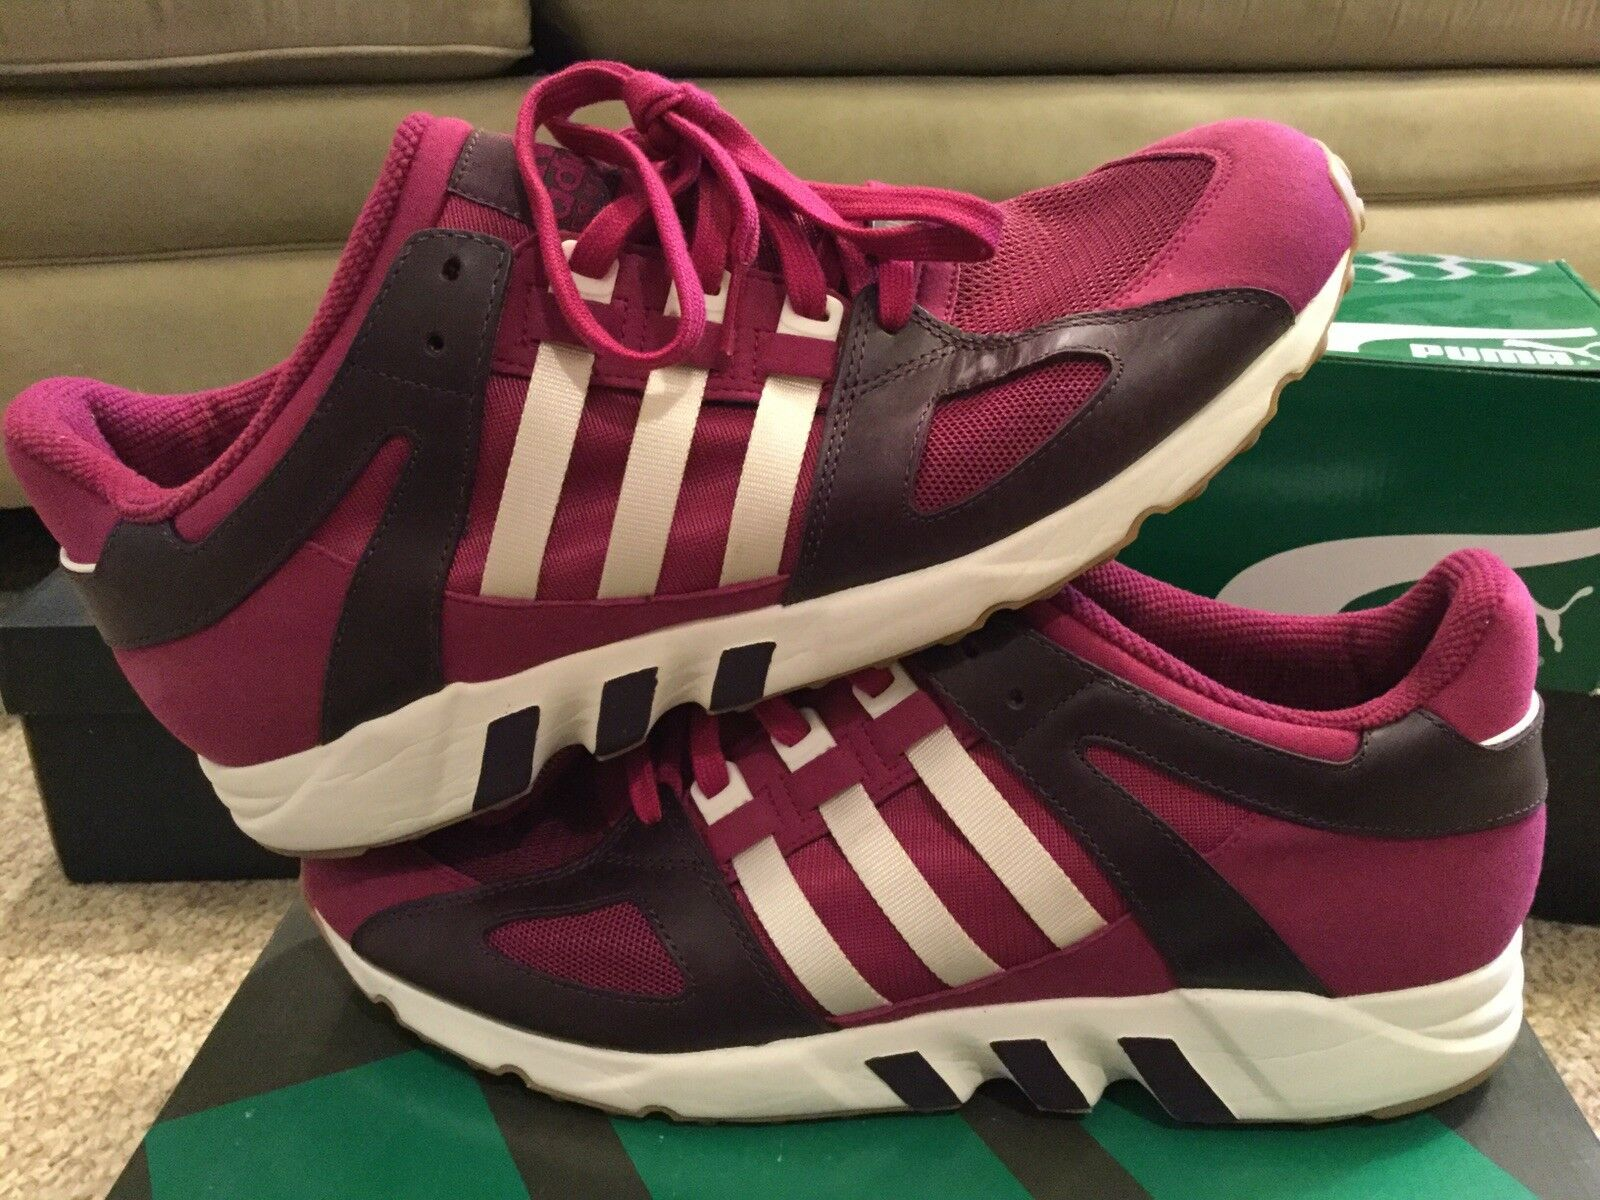 Adidas Originals EQT 93 Equipment Running Guidance Berry-M25501 Size 13